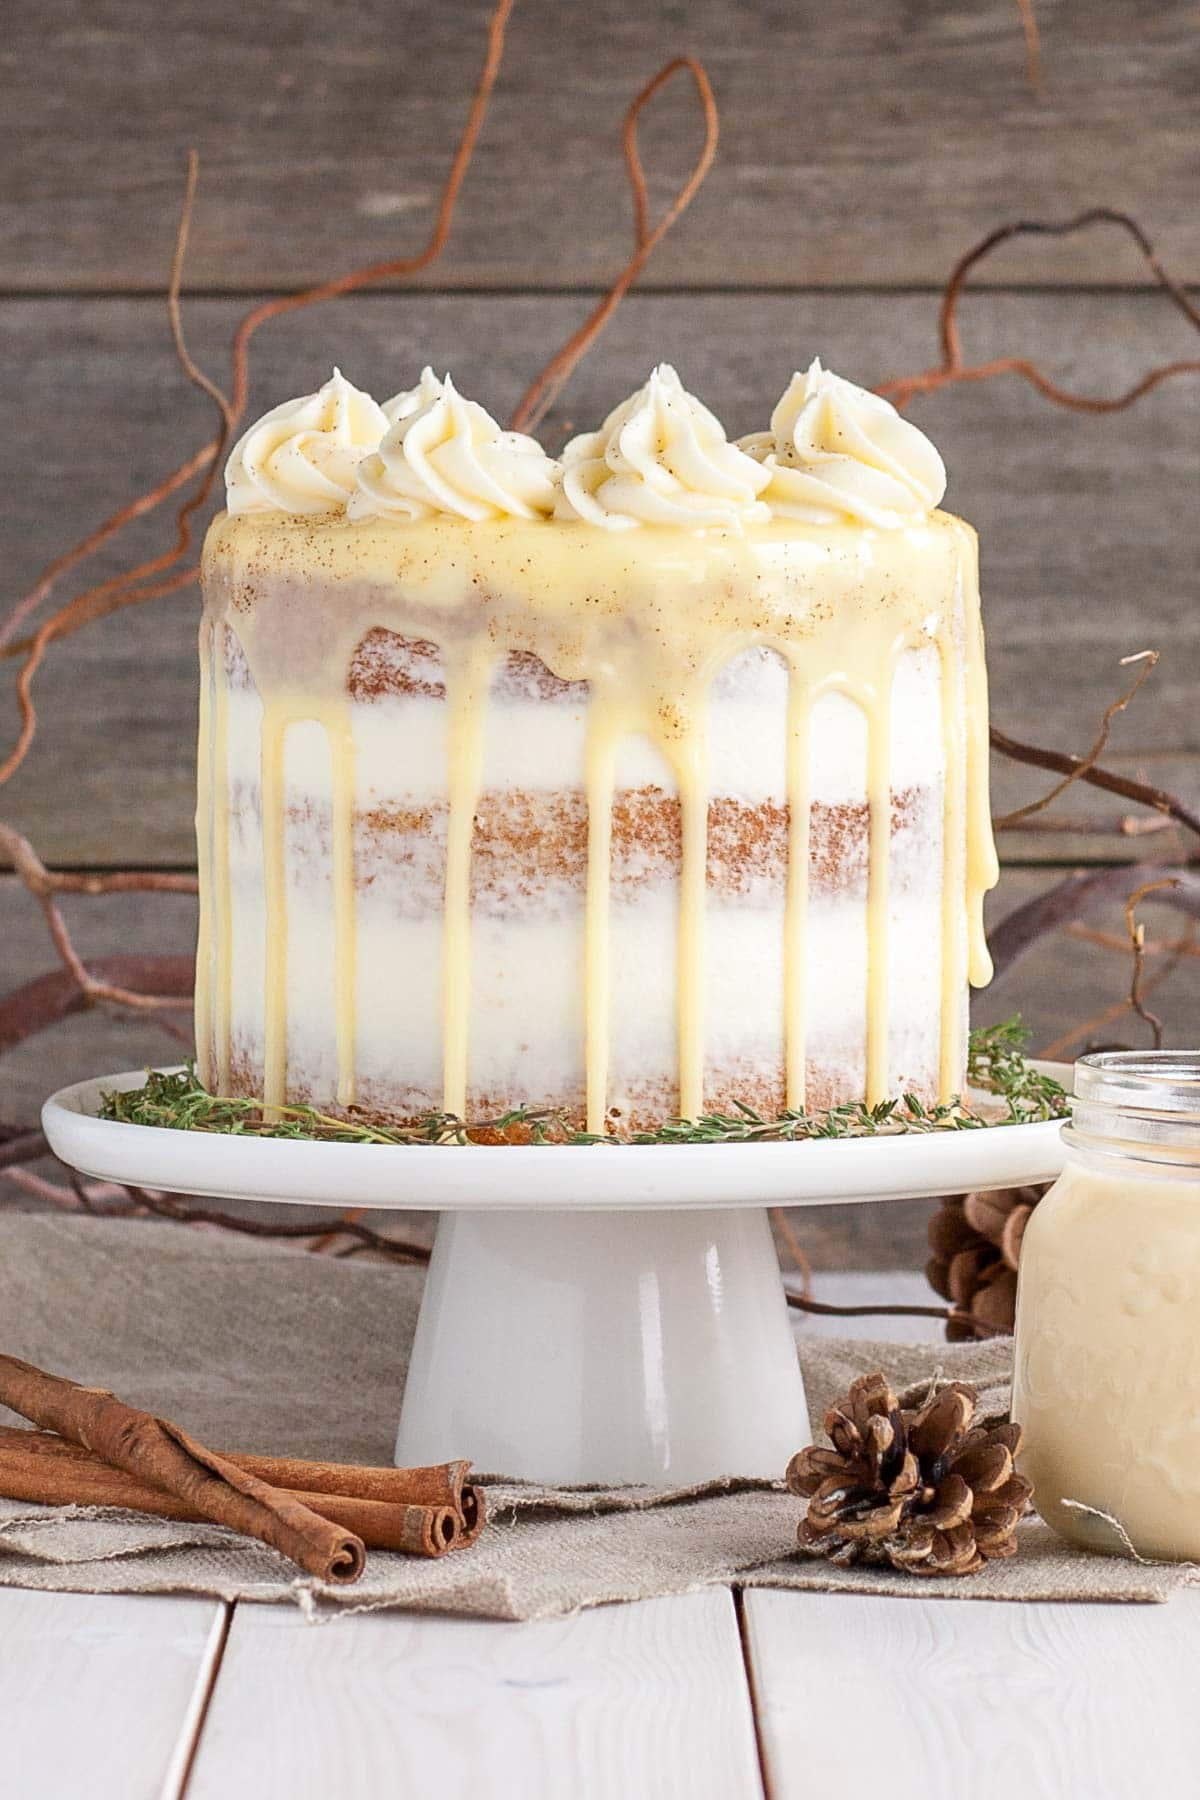 This eggnog cake is the perfect cake for the holiday season!